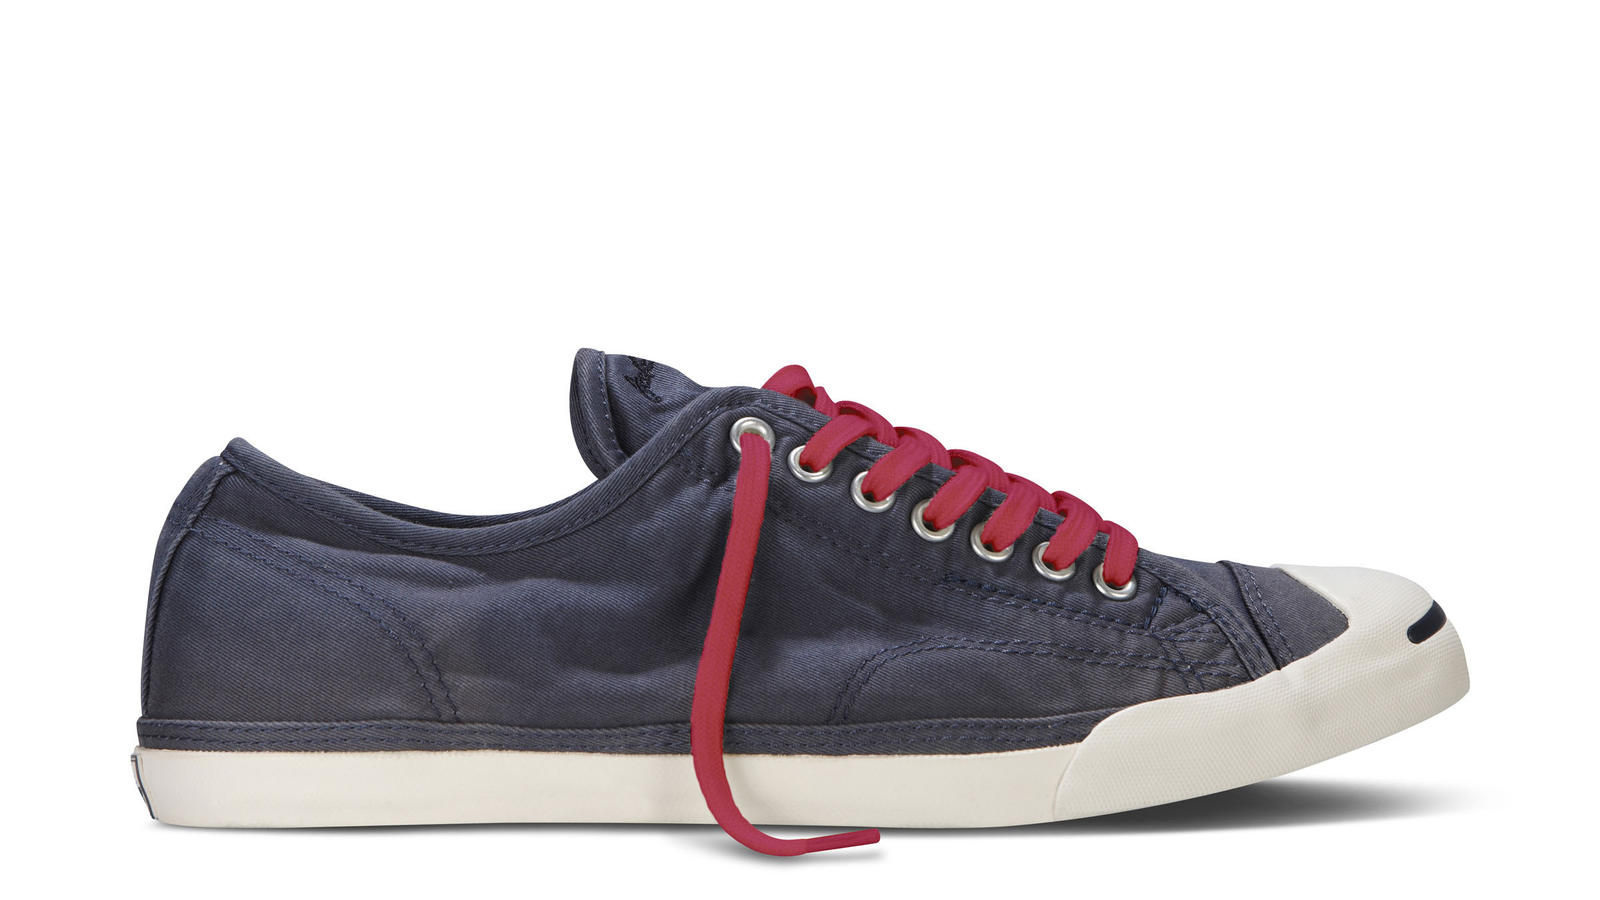 Announcing Fall 2013 Jack Purcell and